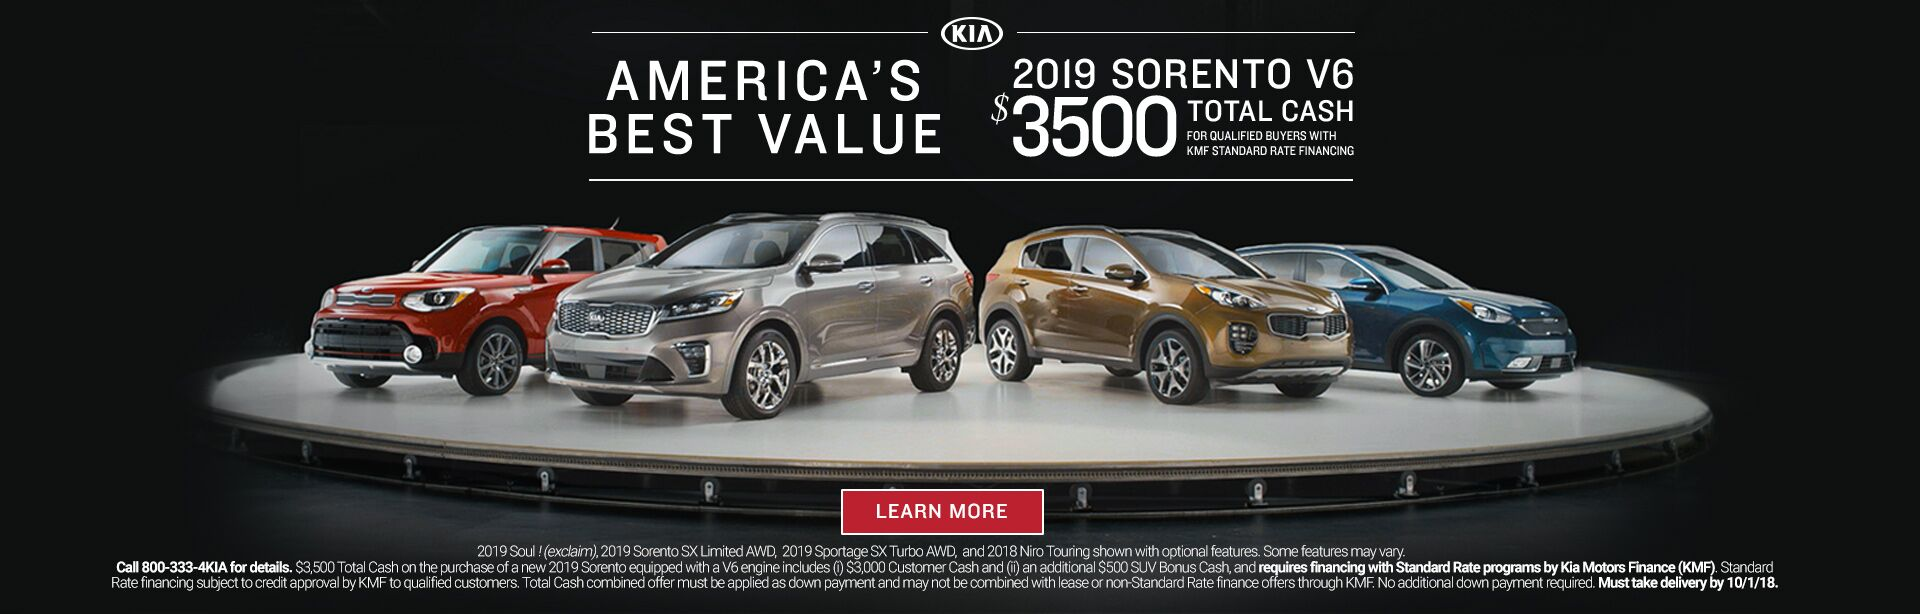 America's Best Value 2019 Sorento Friendly Kia